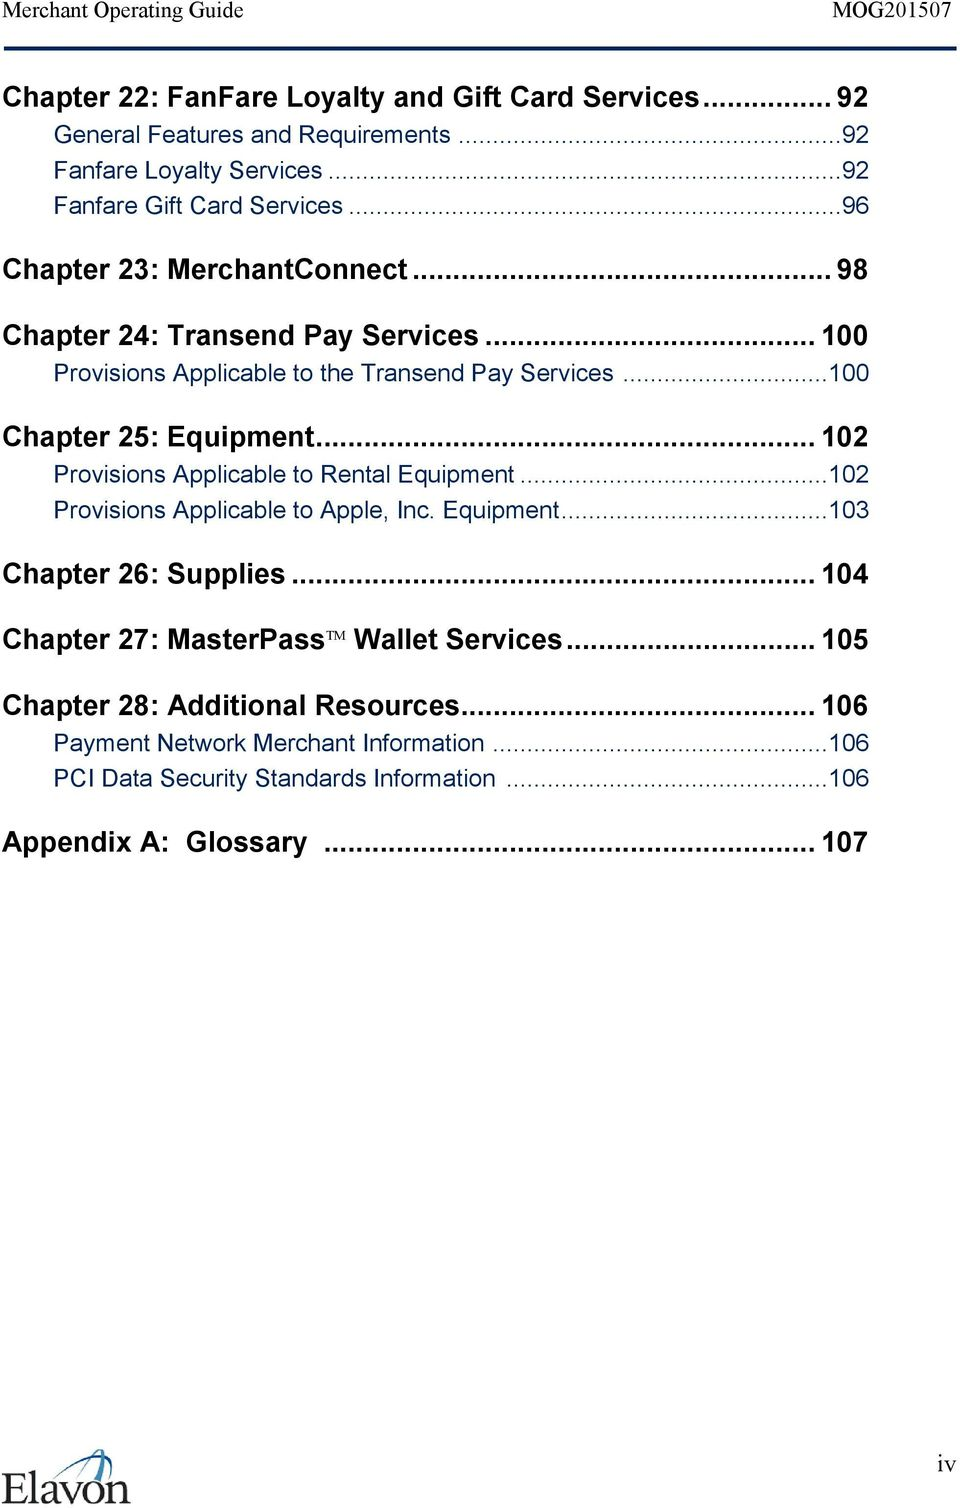 .. 102 Provisions Applicable to Rental Equipment...102 Provisions Applicable to Apple, Inc. Equipment...103 Chapter 26: Supplies.